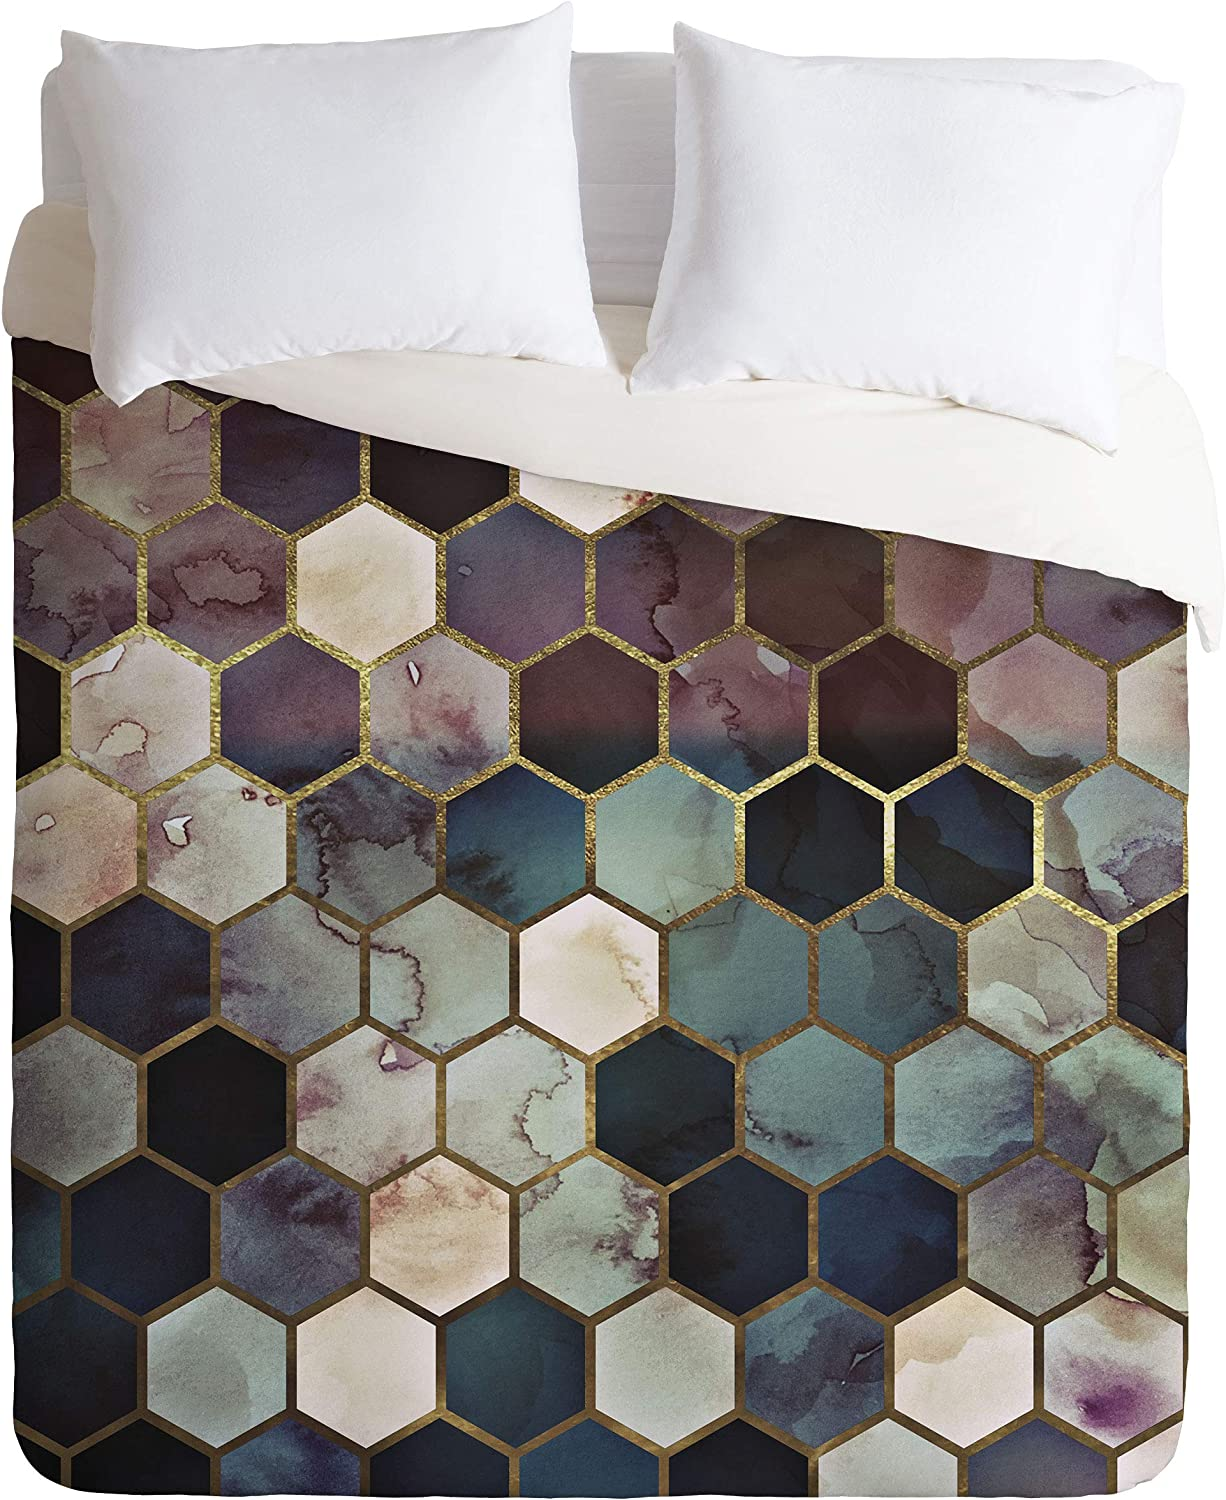 Society6 Monika Strigel Rugged Marble Hexagon King Duvet Cover and 2 Pillow Shams Set, Multi